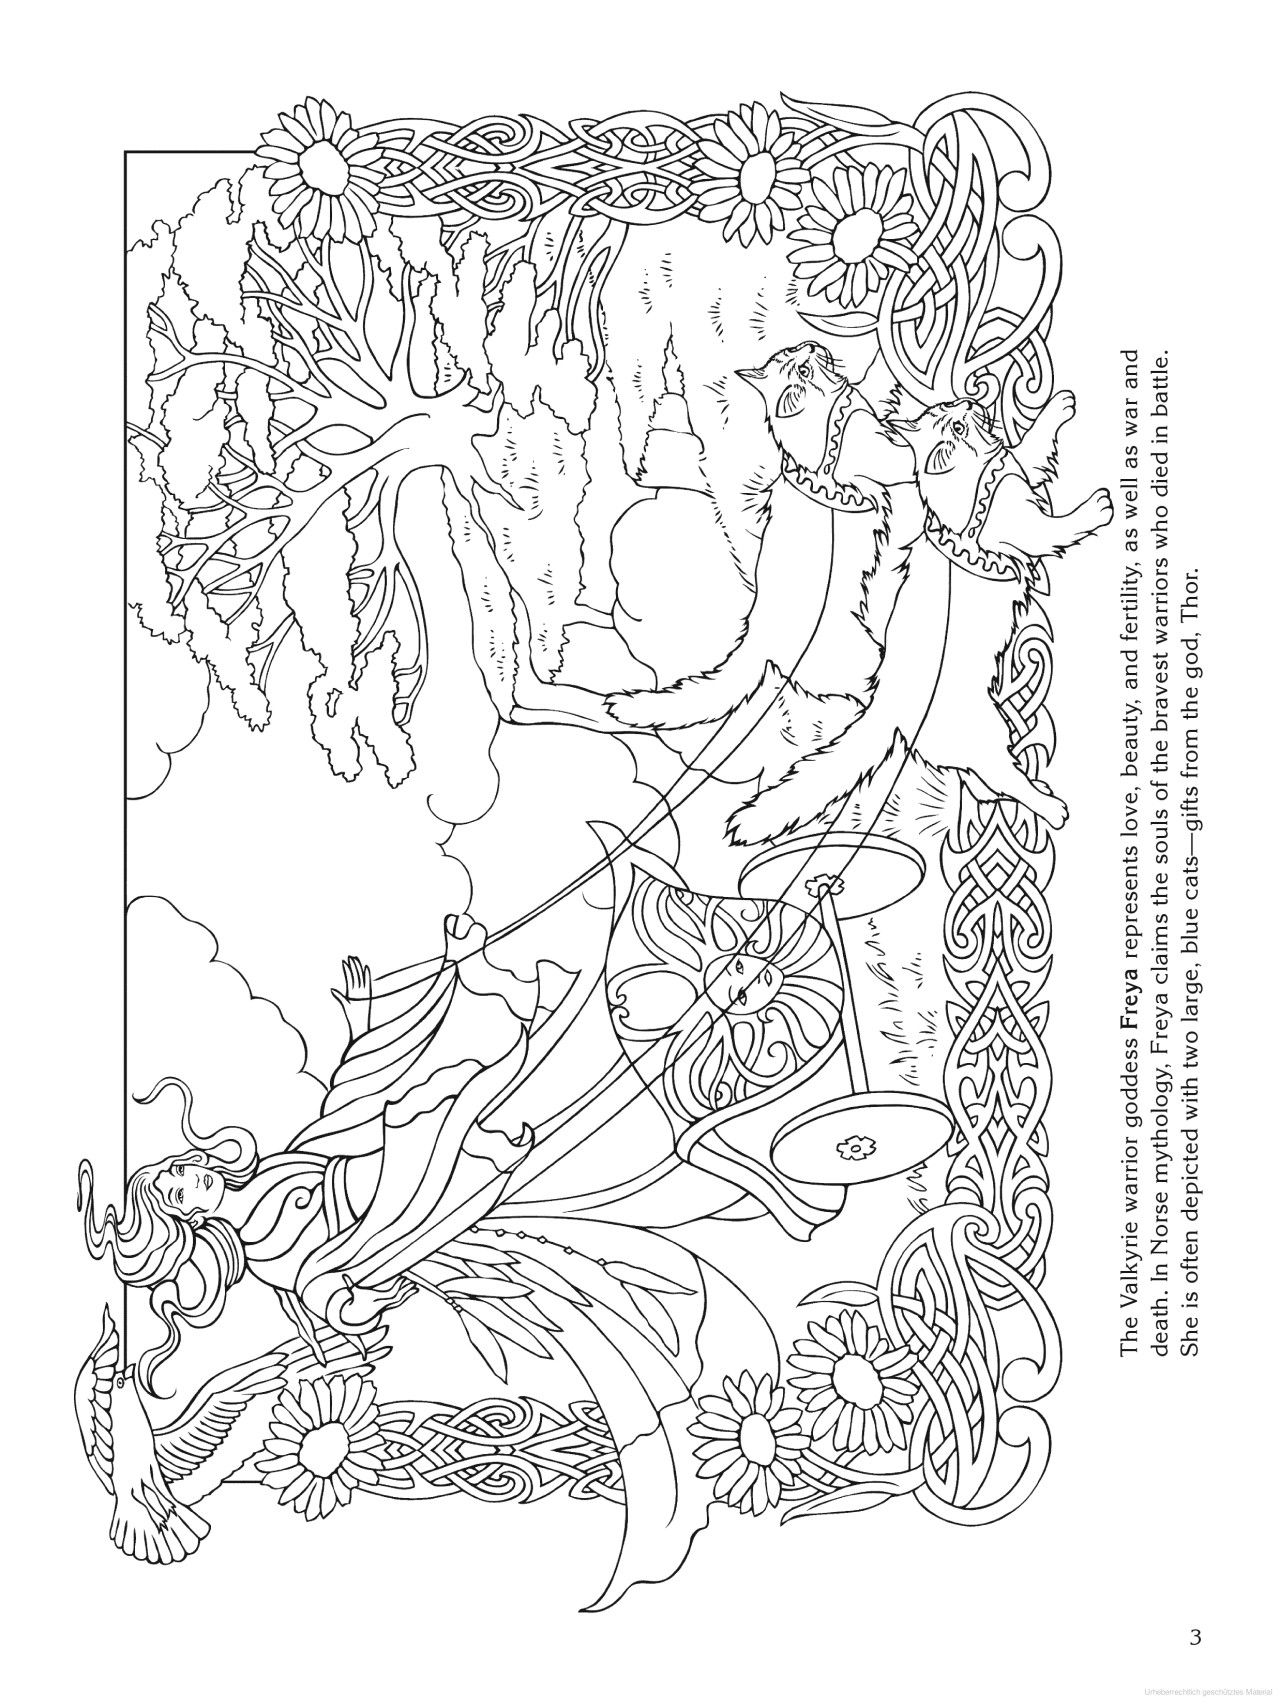 Fantasy Coloring Pages For Adults Luxury Goddess Coloring Page Freya Norse Love Coloring Pages Cat Coloring Book Coloring Pages